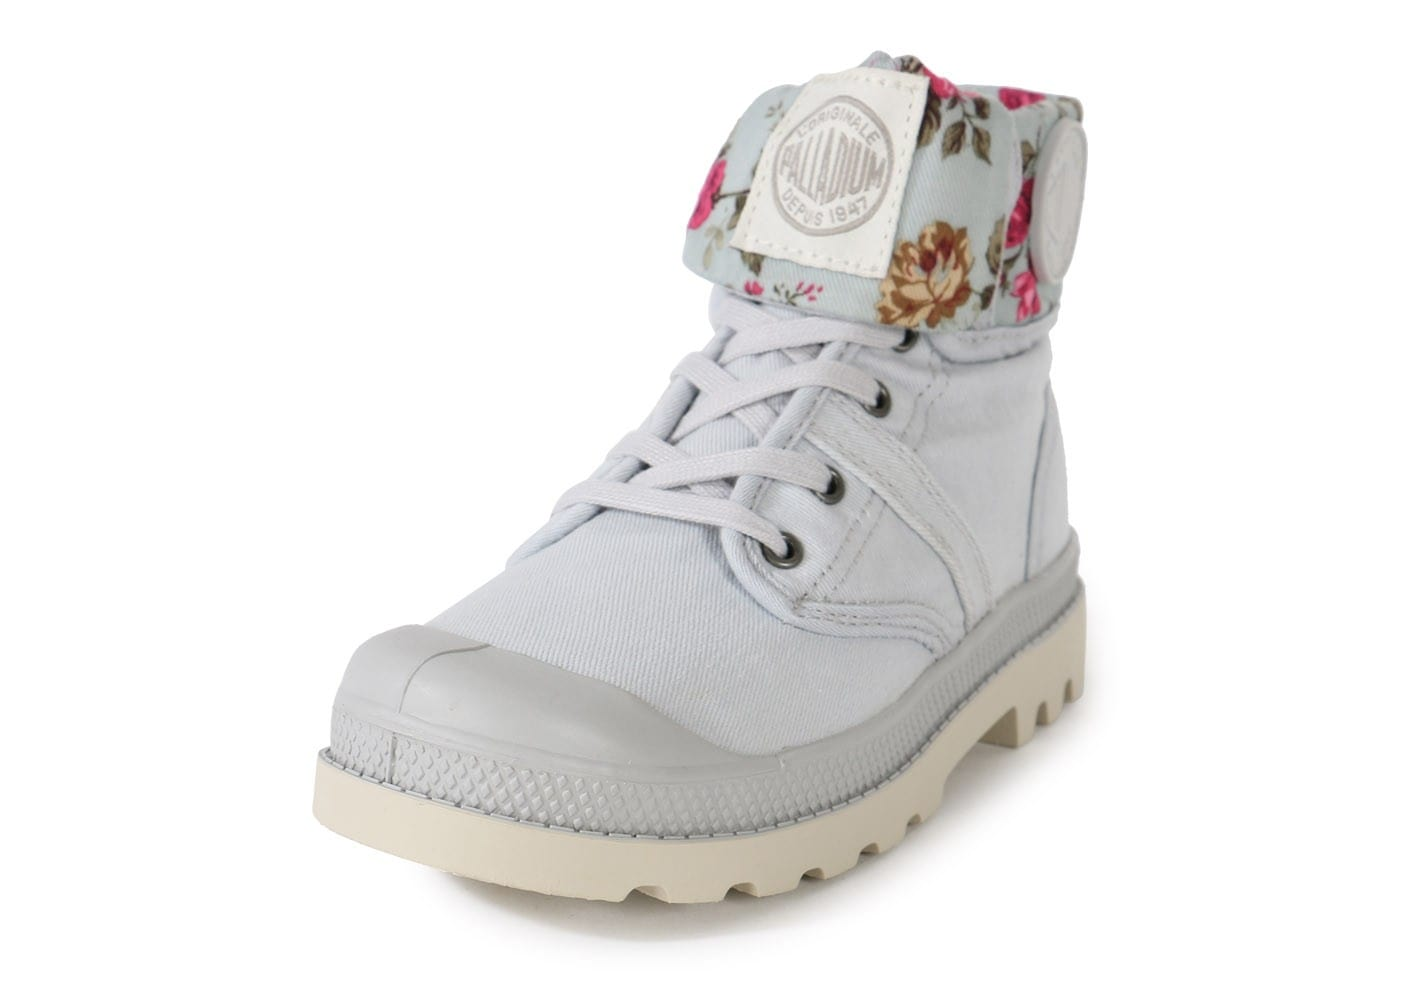 PALLADIUM BAGGY TWL BOOTS FEMME chaussures toile style